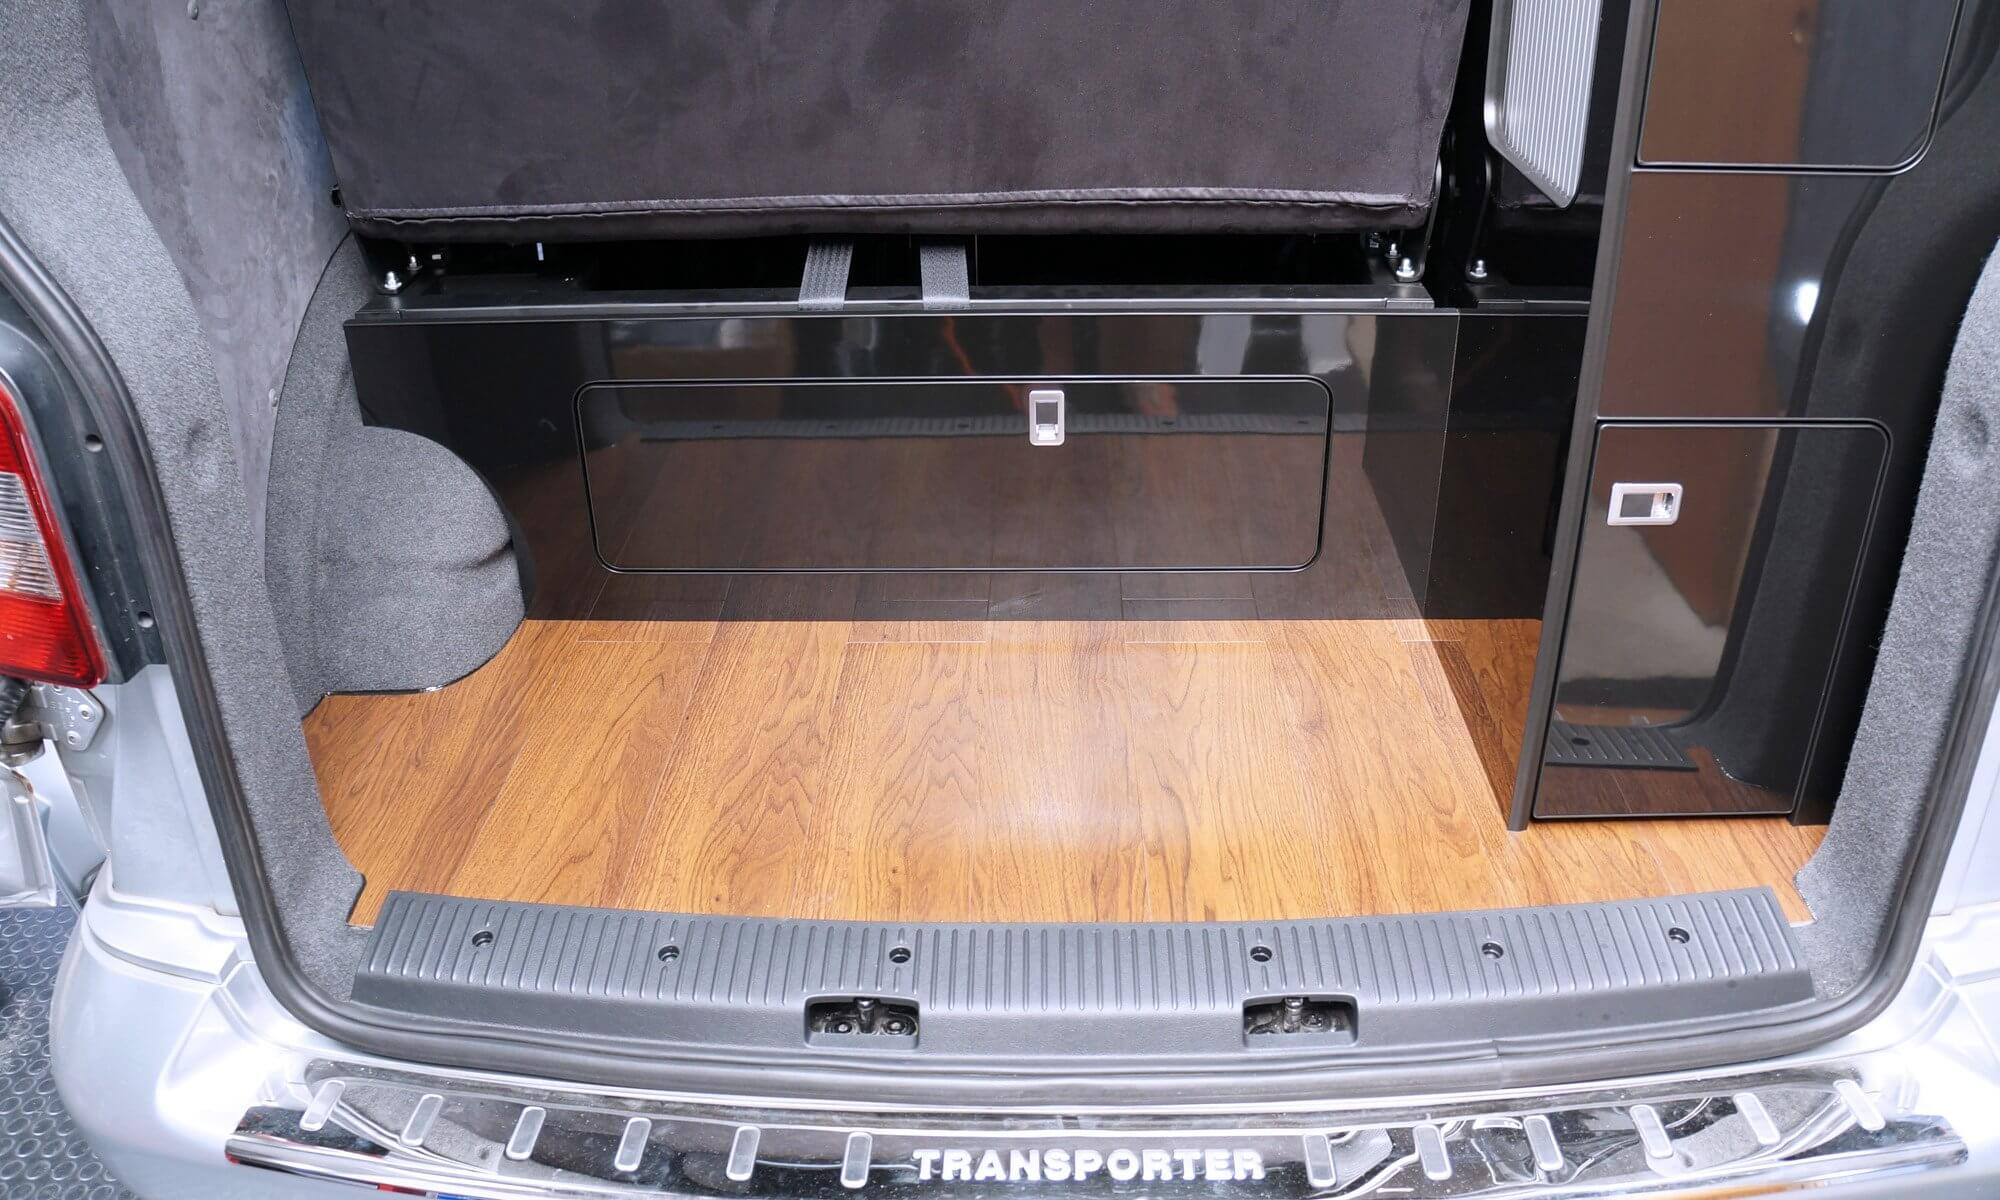 gloss_black_furniture_board_back_of_VW_T5